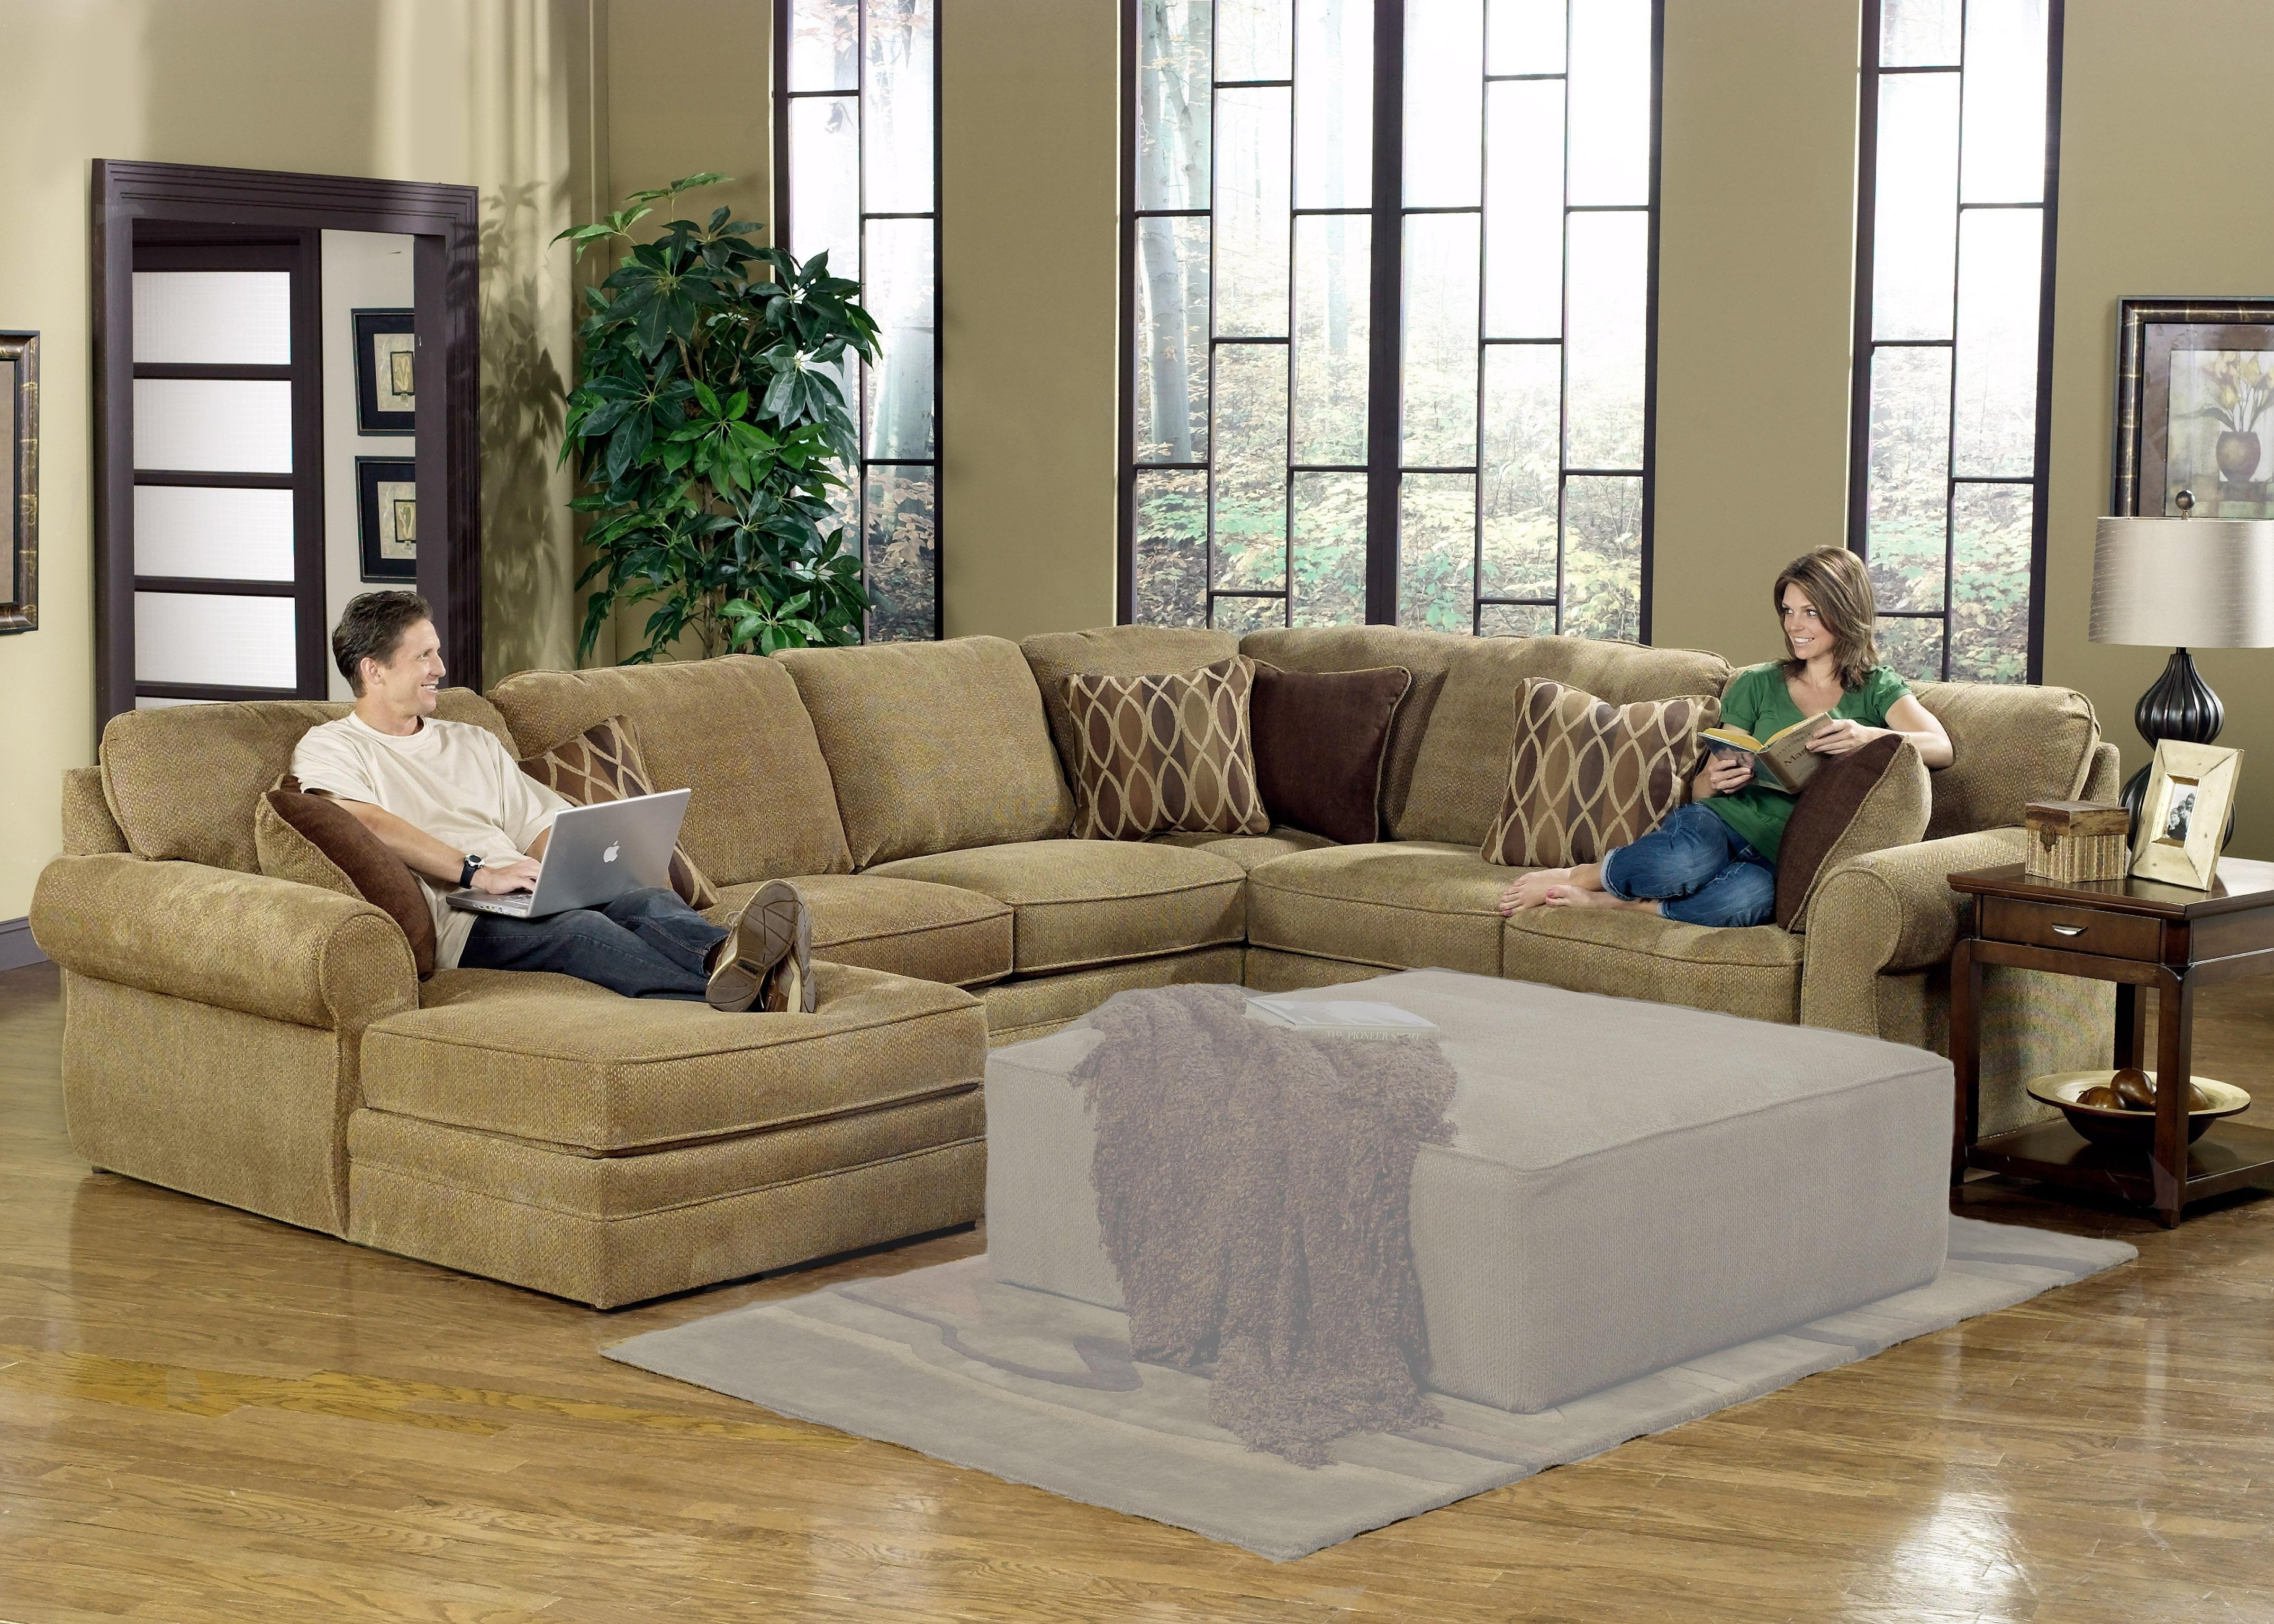 Sectional Sofas Calgary | Functionalities Regarding Sectional Sofas At Calgary (View 6 of 10)